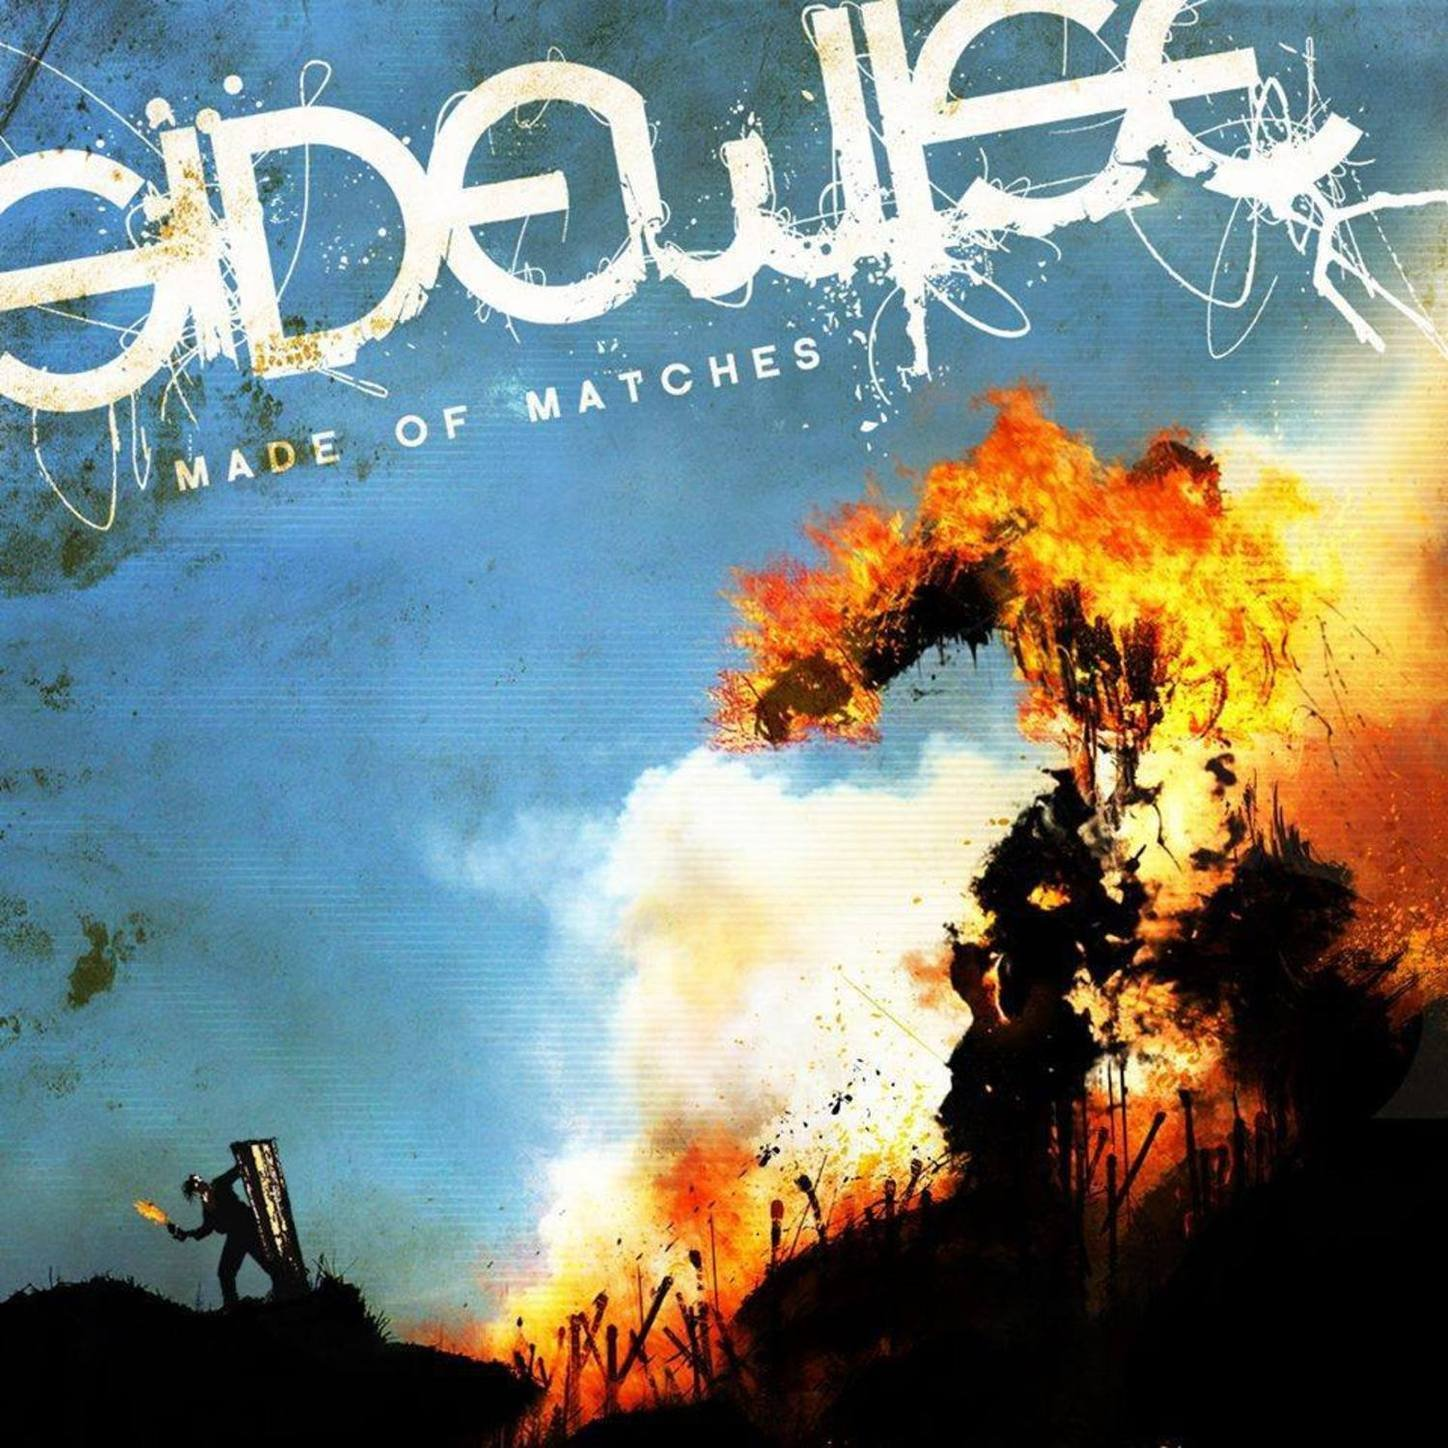 Sidewise-Made Of Matches-CD-FLAC-2014-FLACME